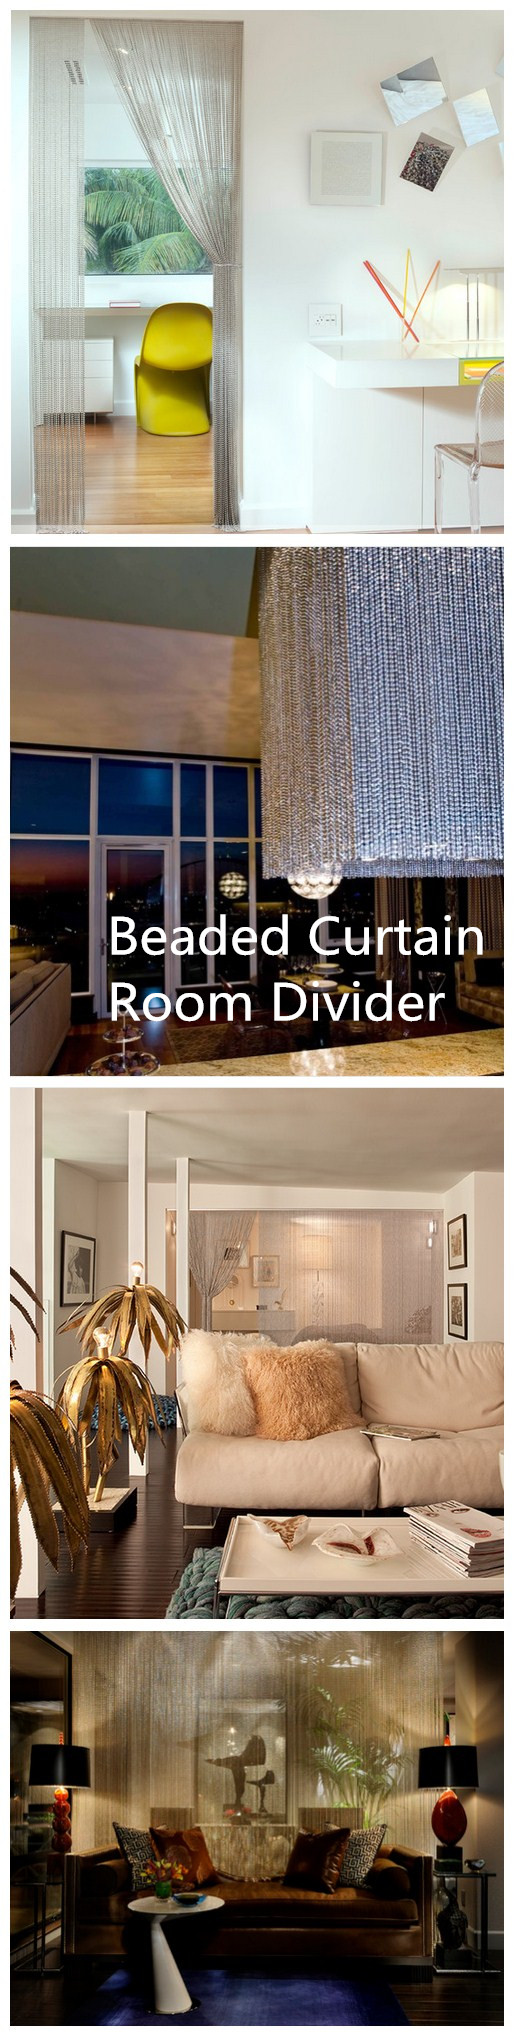 Chain curtain divider - Beaded Curtain Room Divider In Interior Decoration Beaded Chain Door Screen Beaded Chain Chandelier